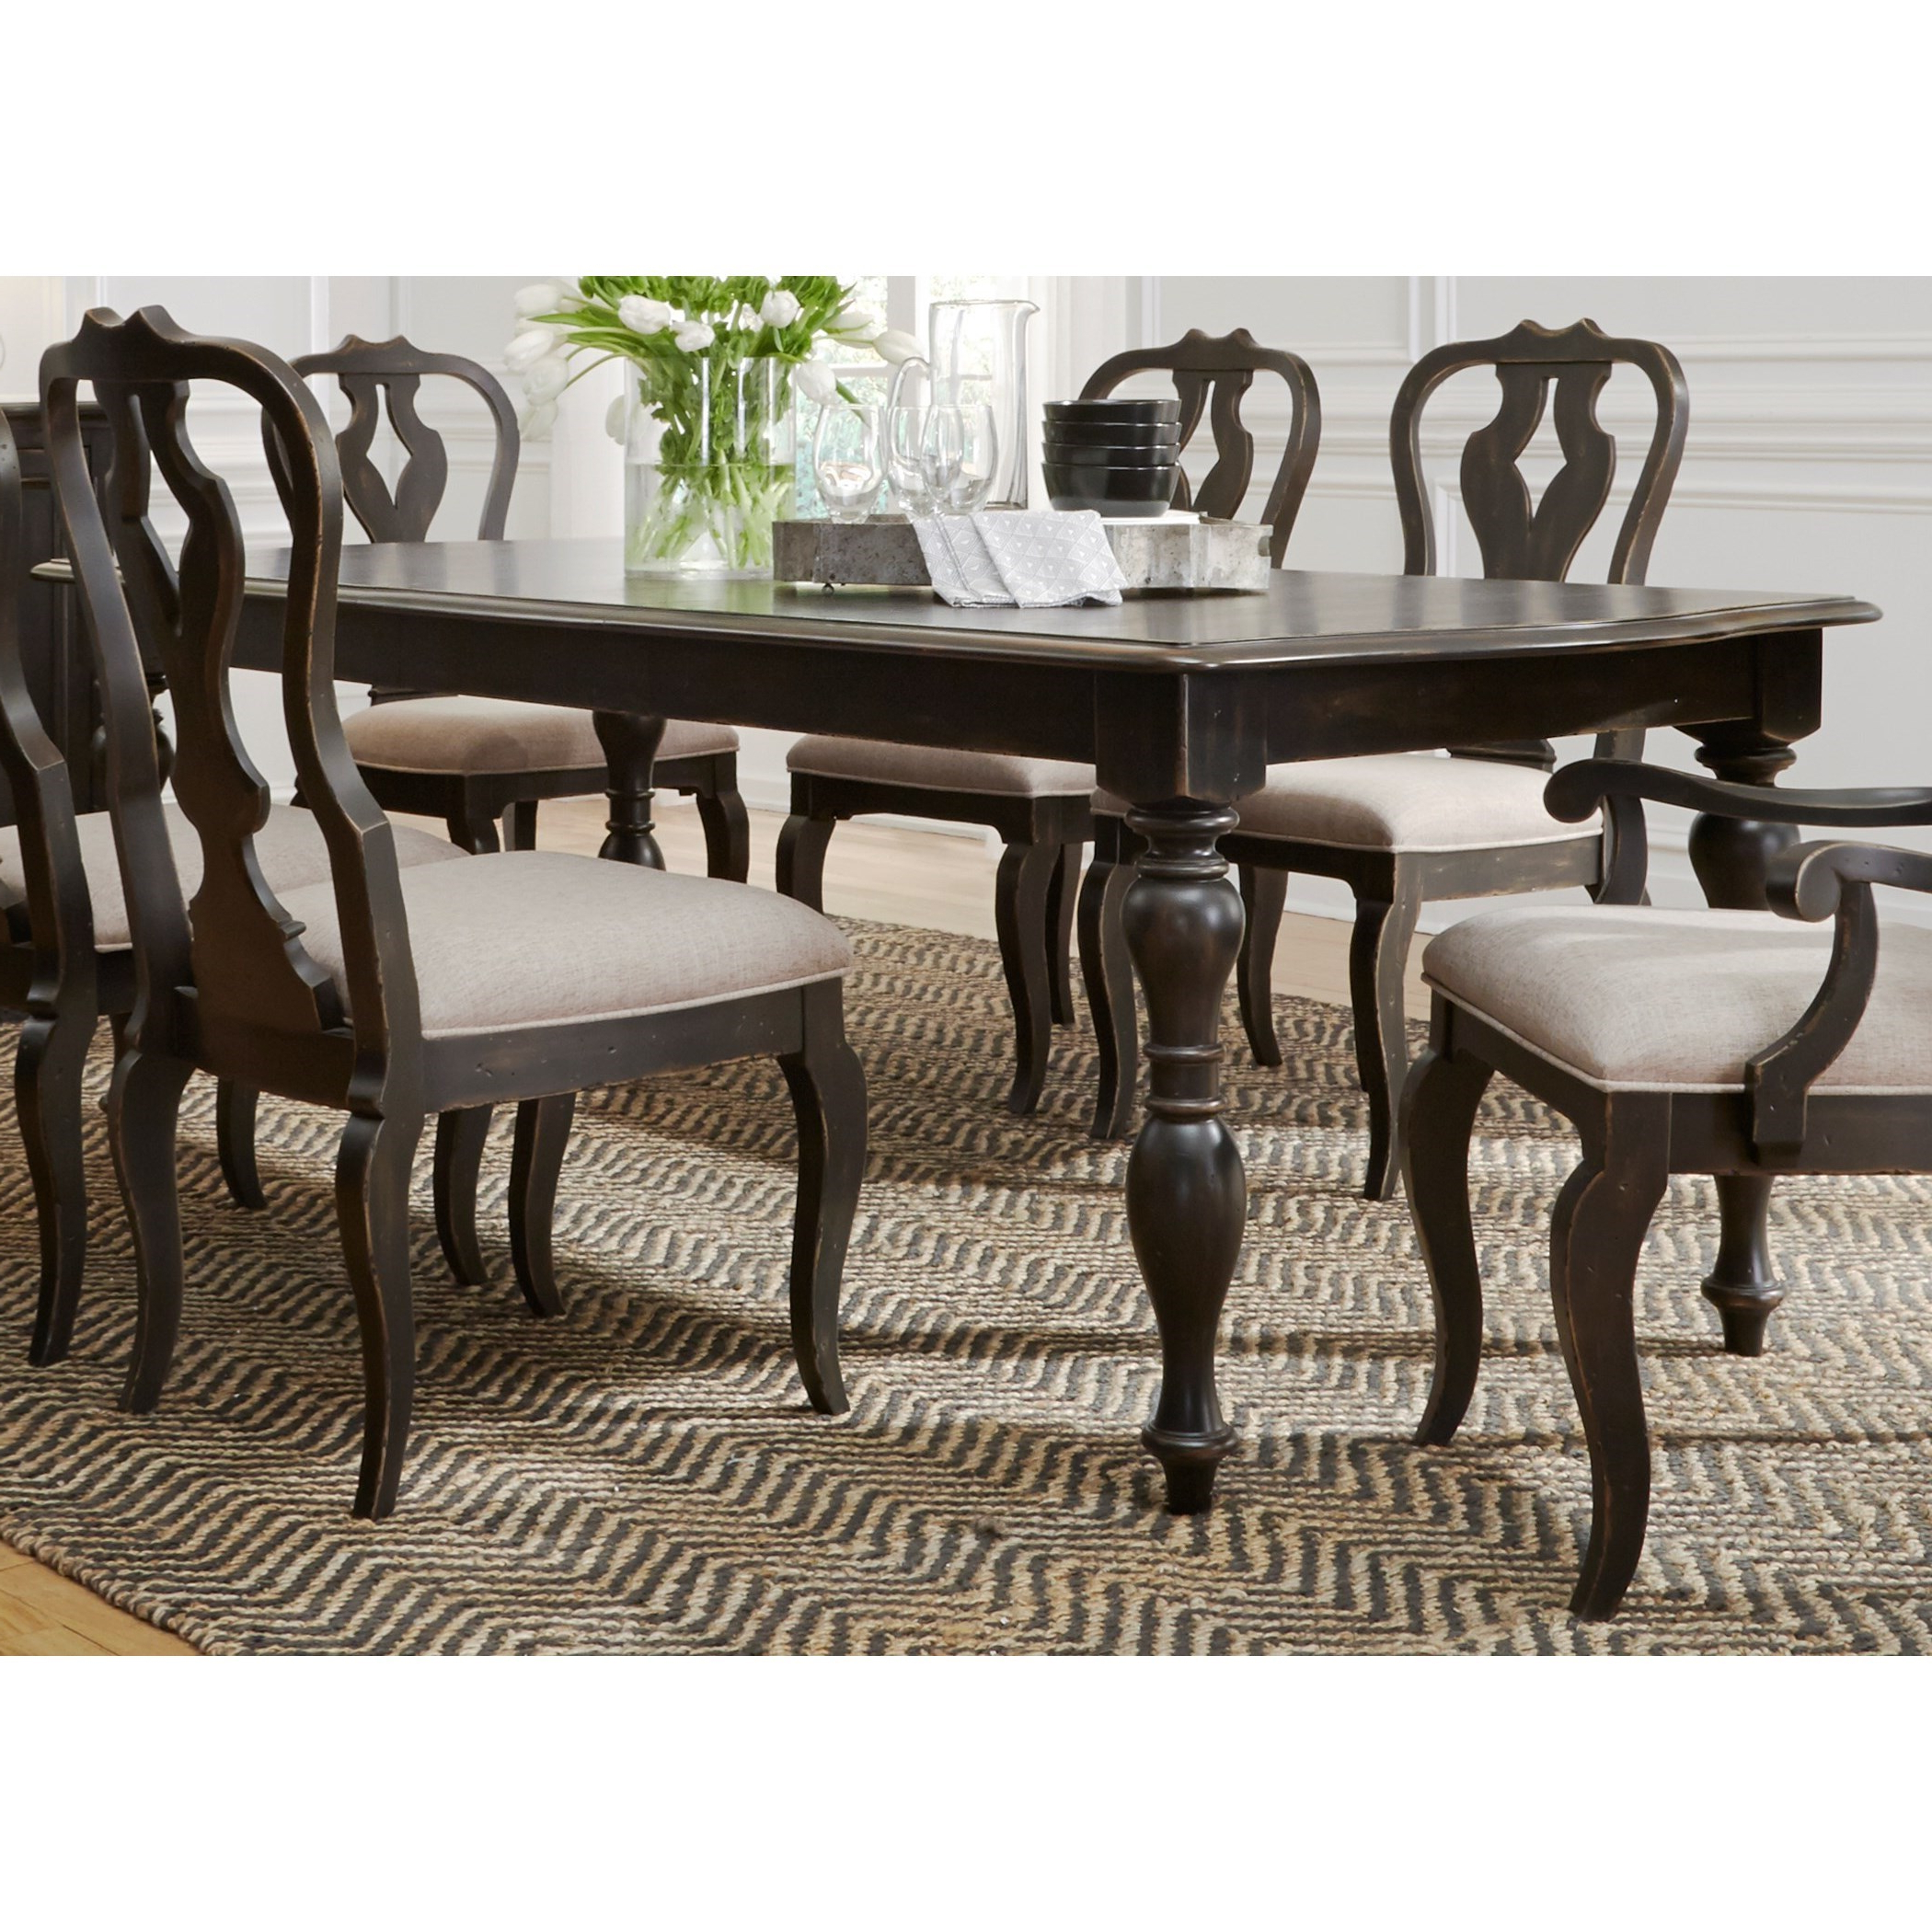 Rectangular Dining Tables In Trendy Chesapeake Rectangular Dining Table (View 13 of 30)